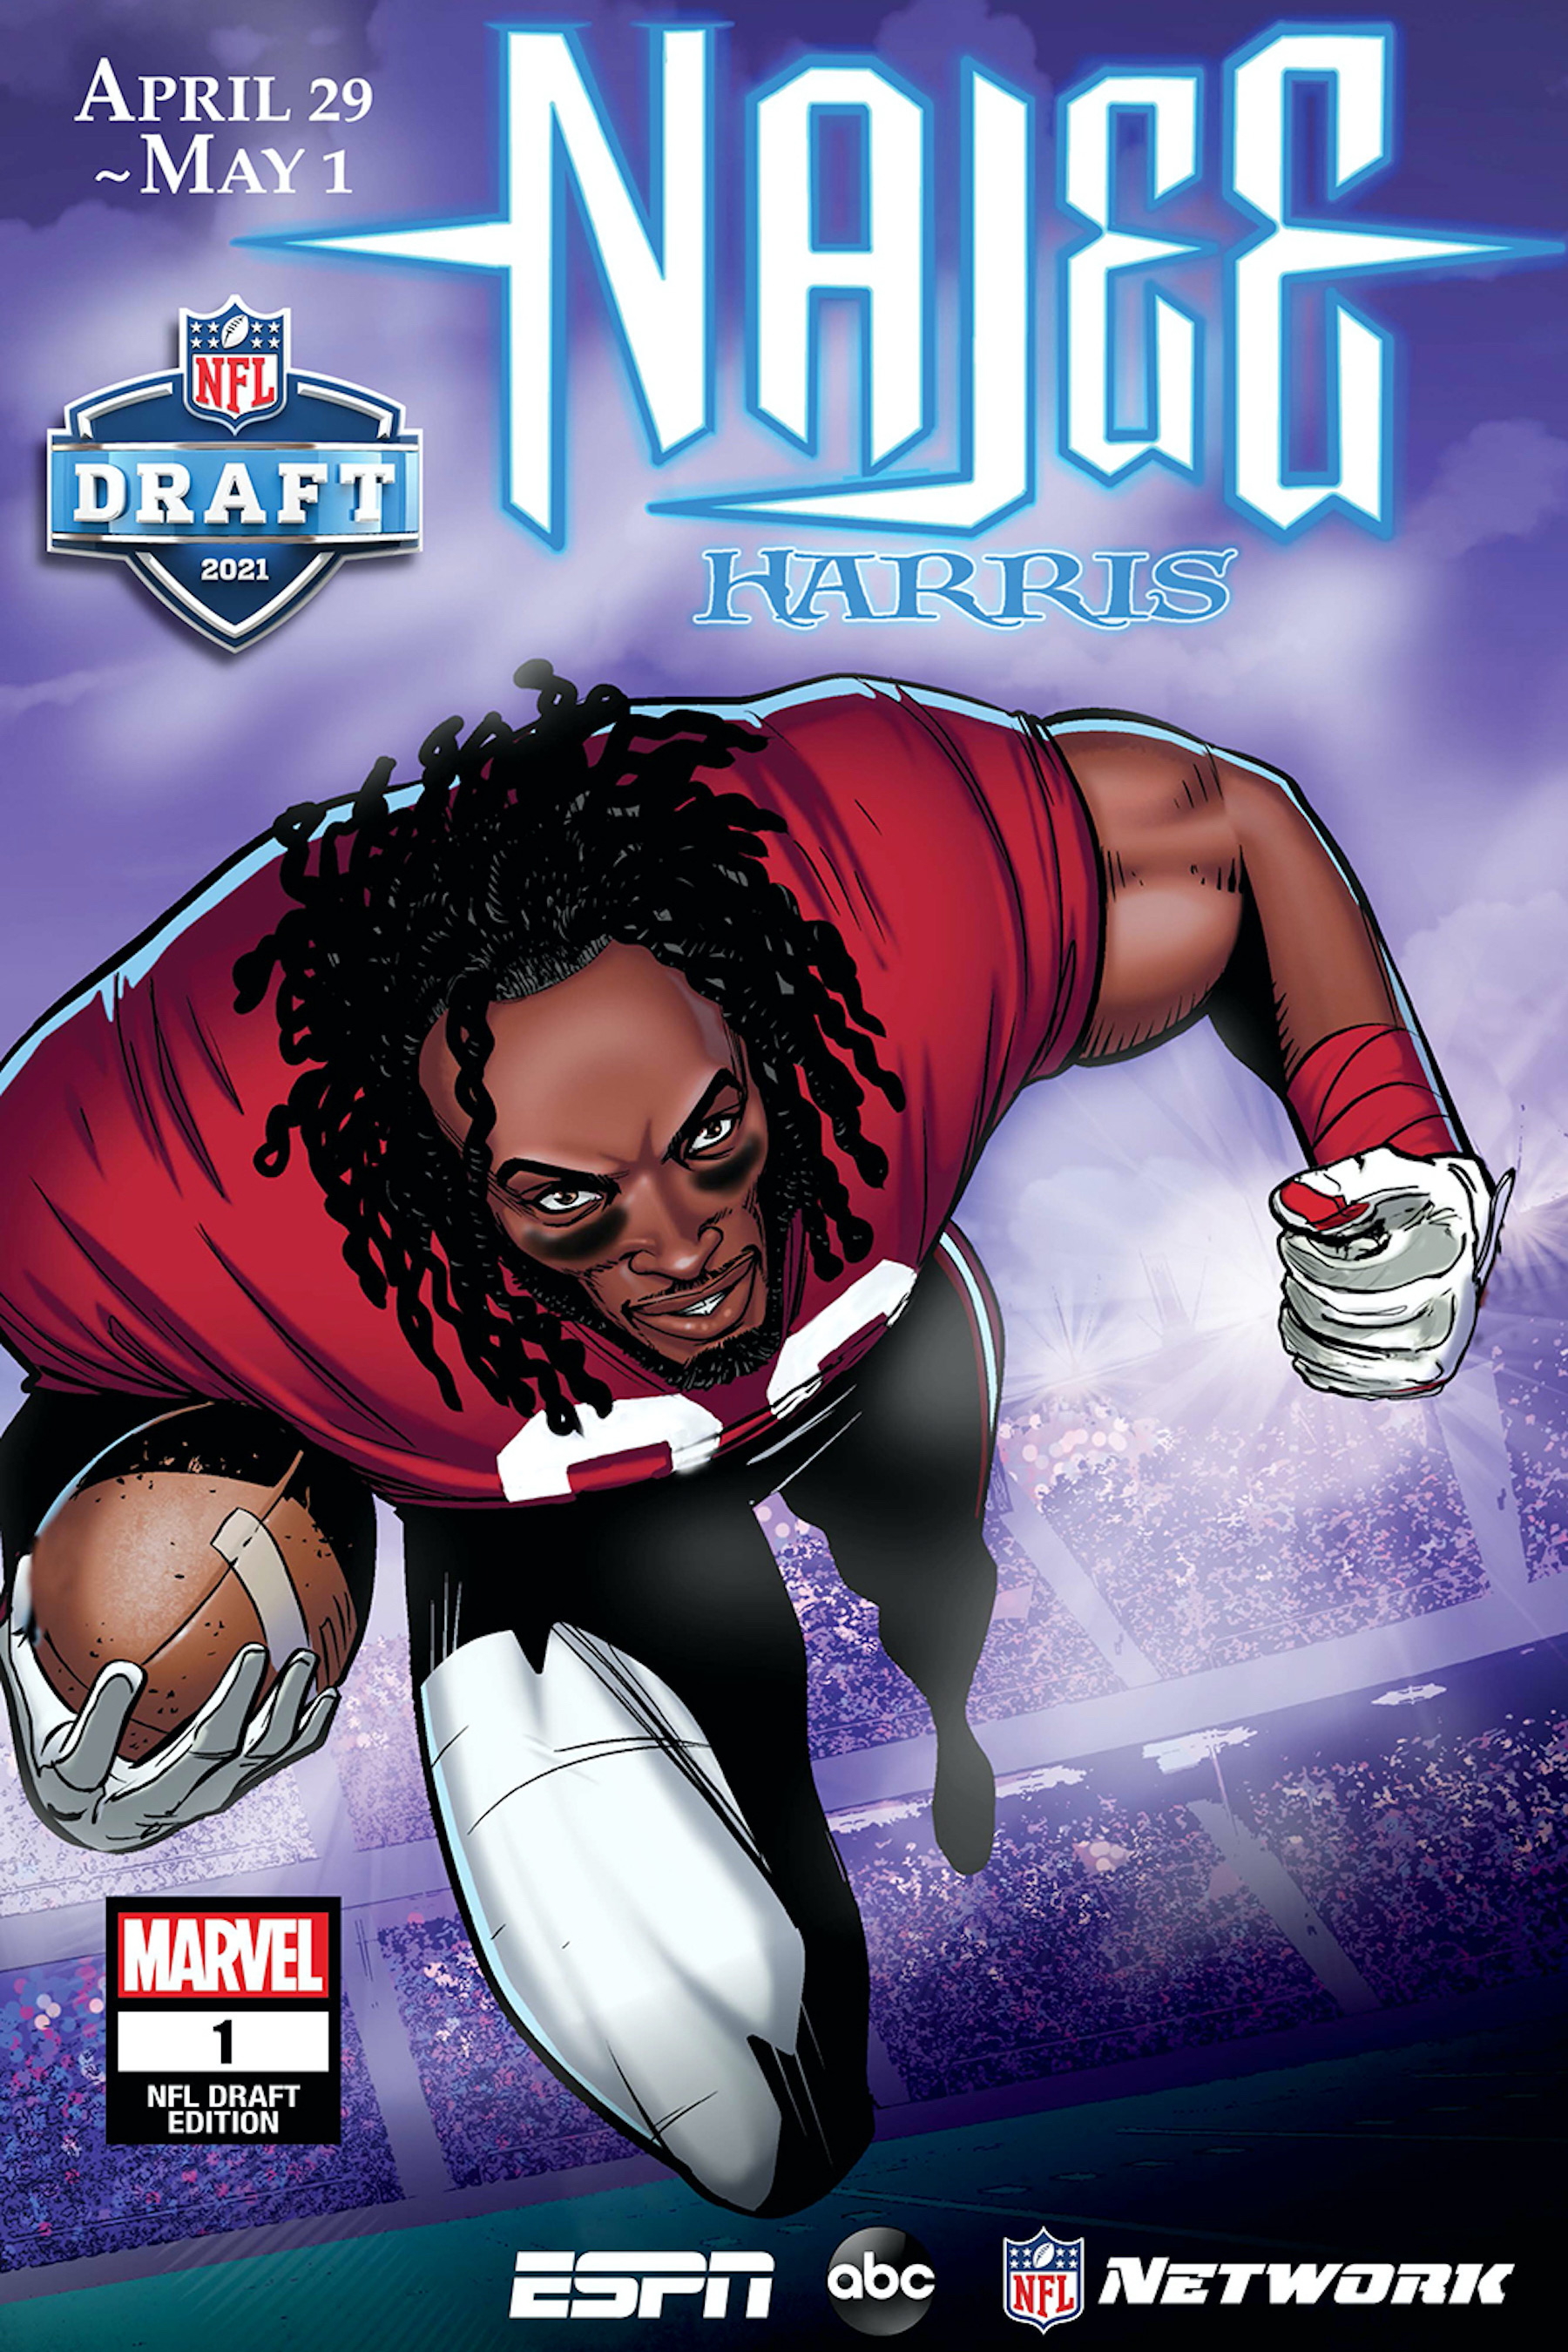 Najee Harris byRay Anthony Height and Wil Quintana, after STRANGE TALES: BLADE #3 byBart Sears